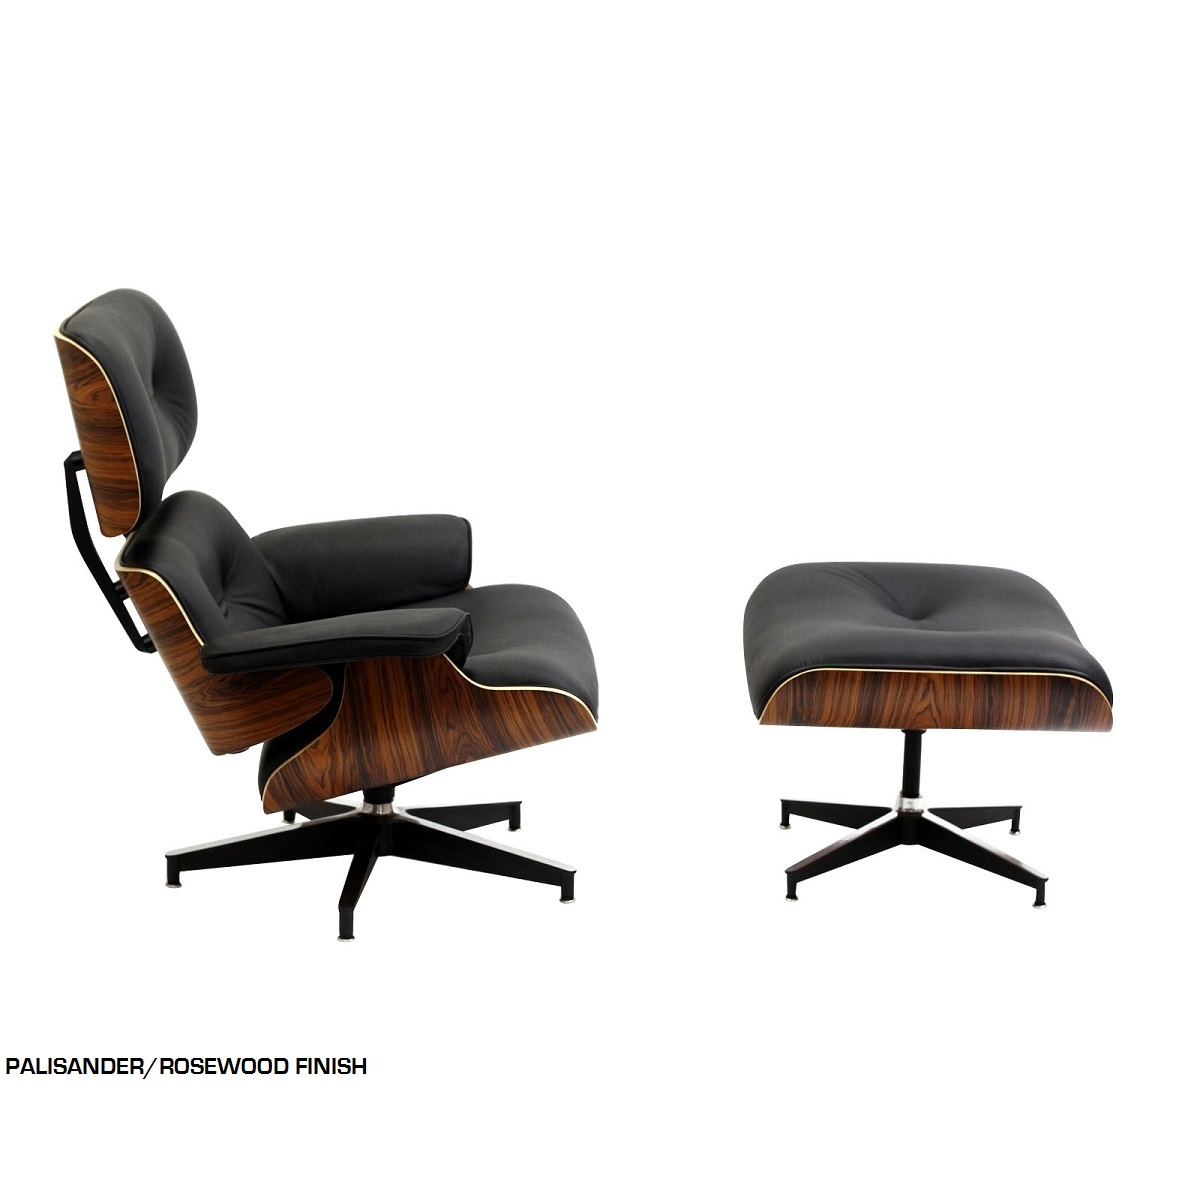 Eames classic style mid century lounge chair ottoman set